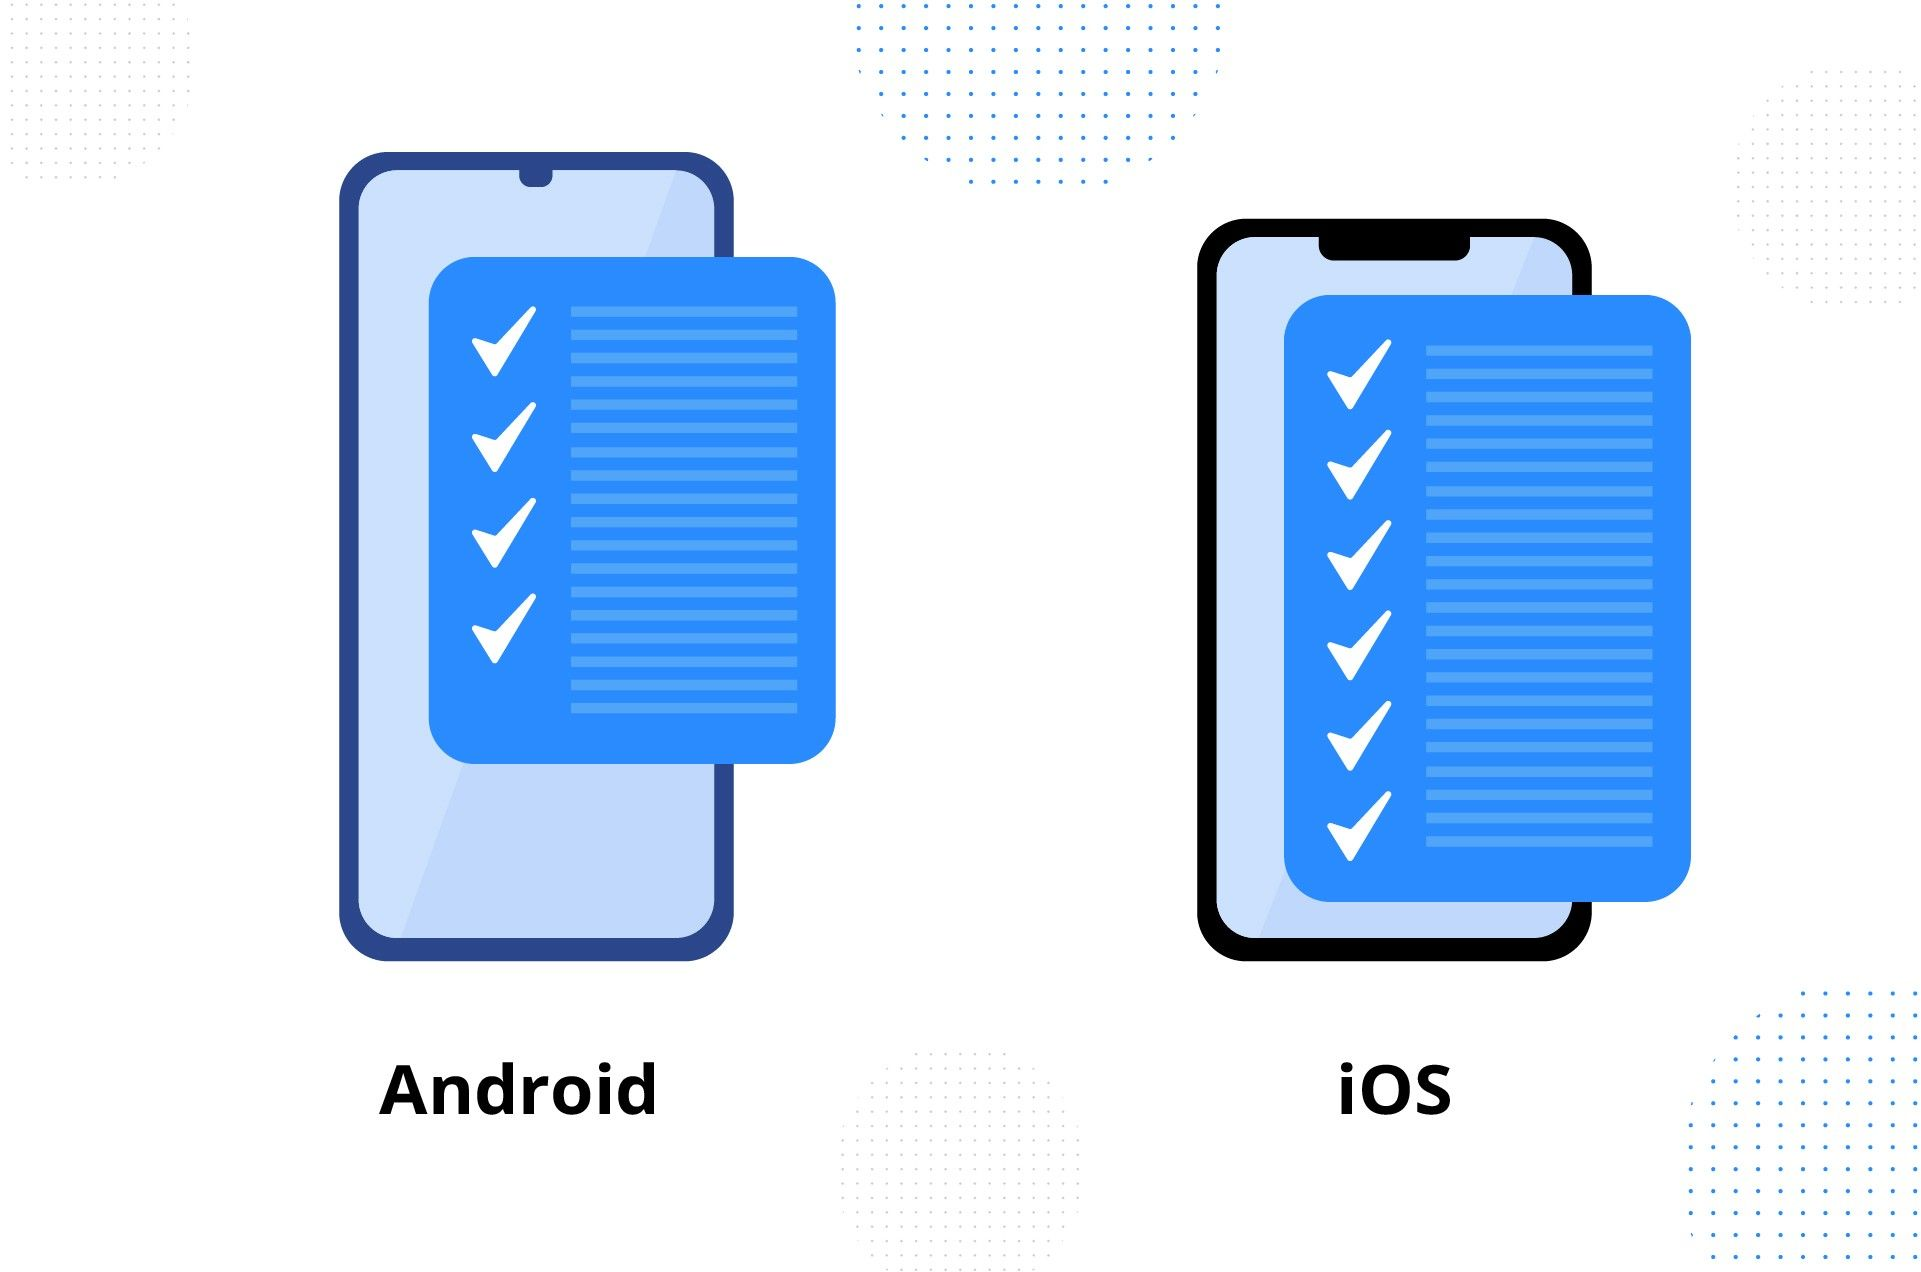 iOS vs Android release issues